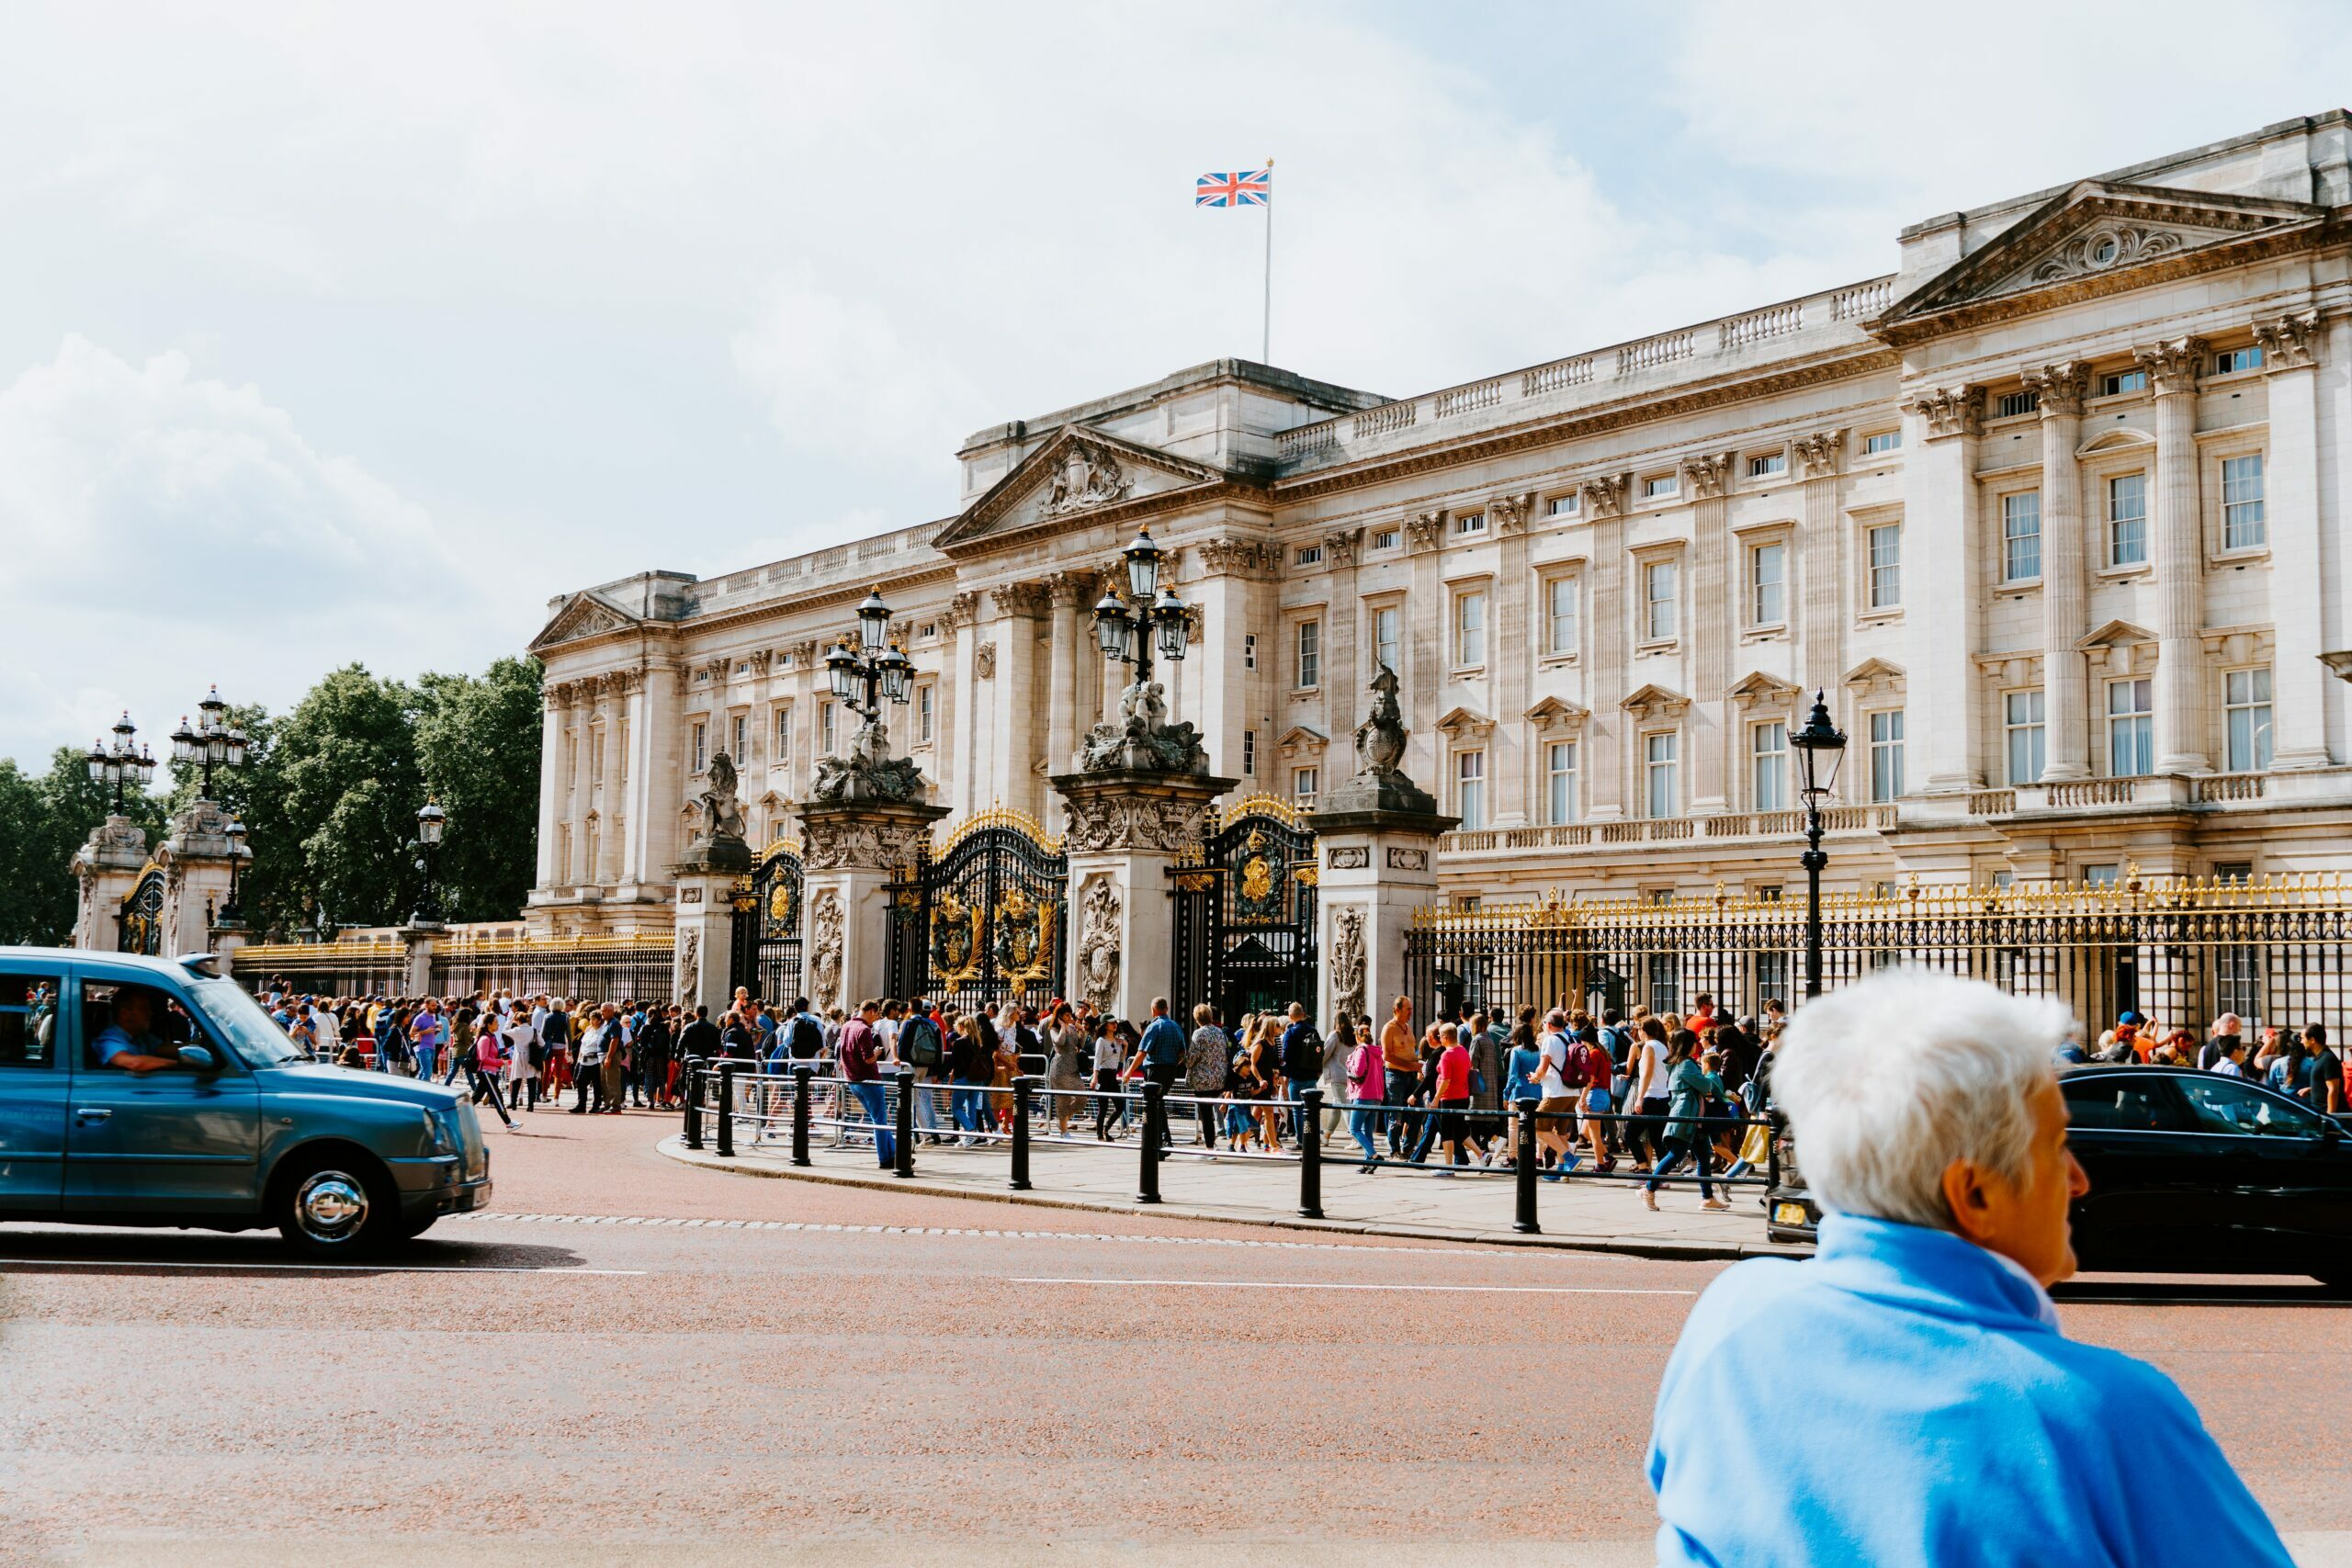 Royals' interview alleging racism reveals ongoing challenges for British monarchy, say commentators